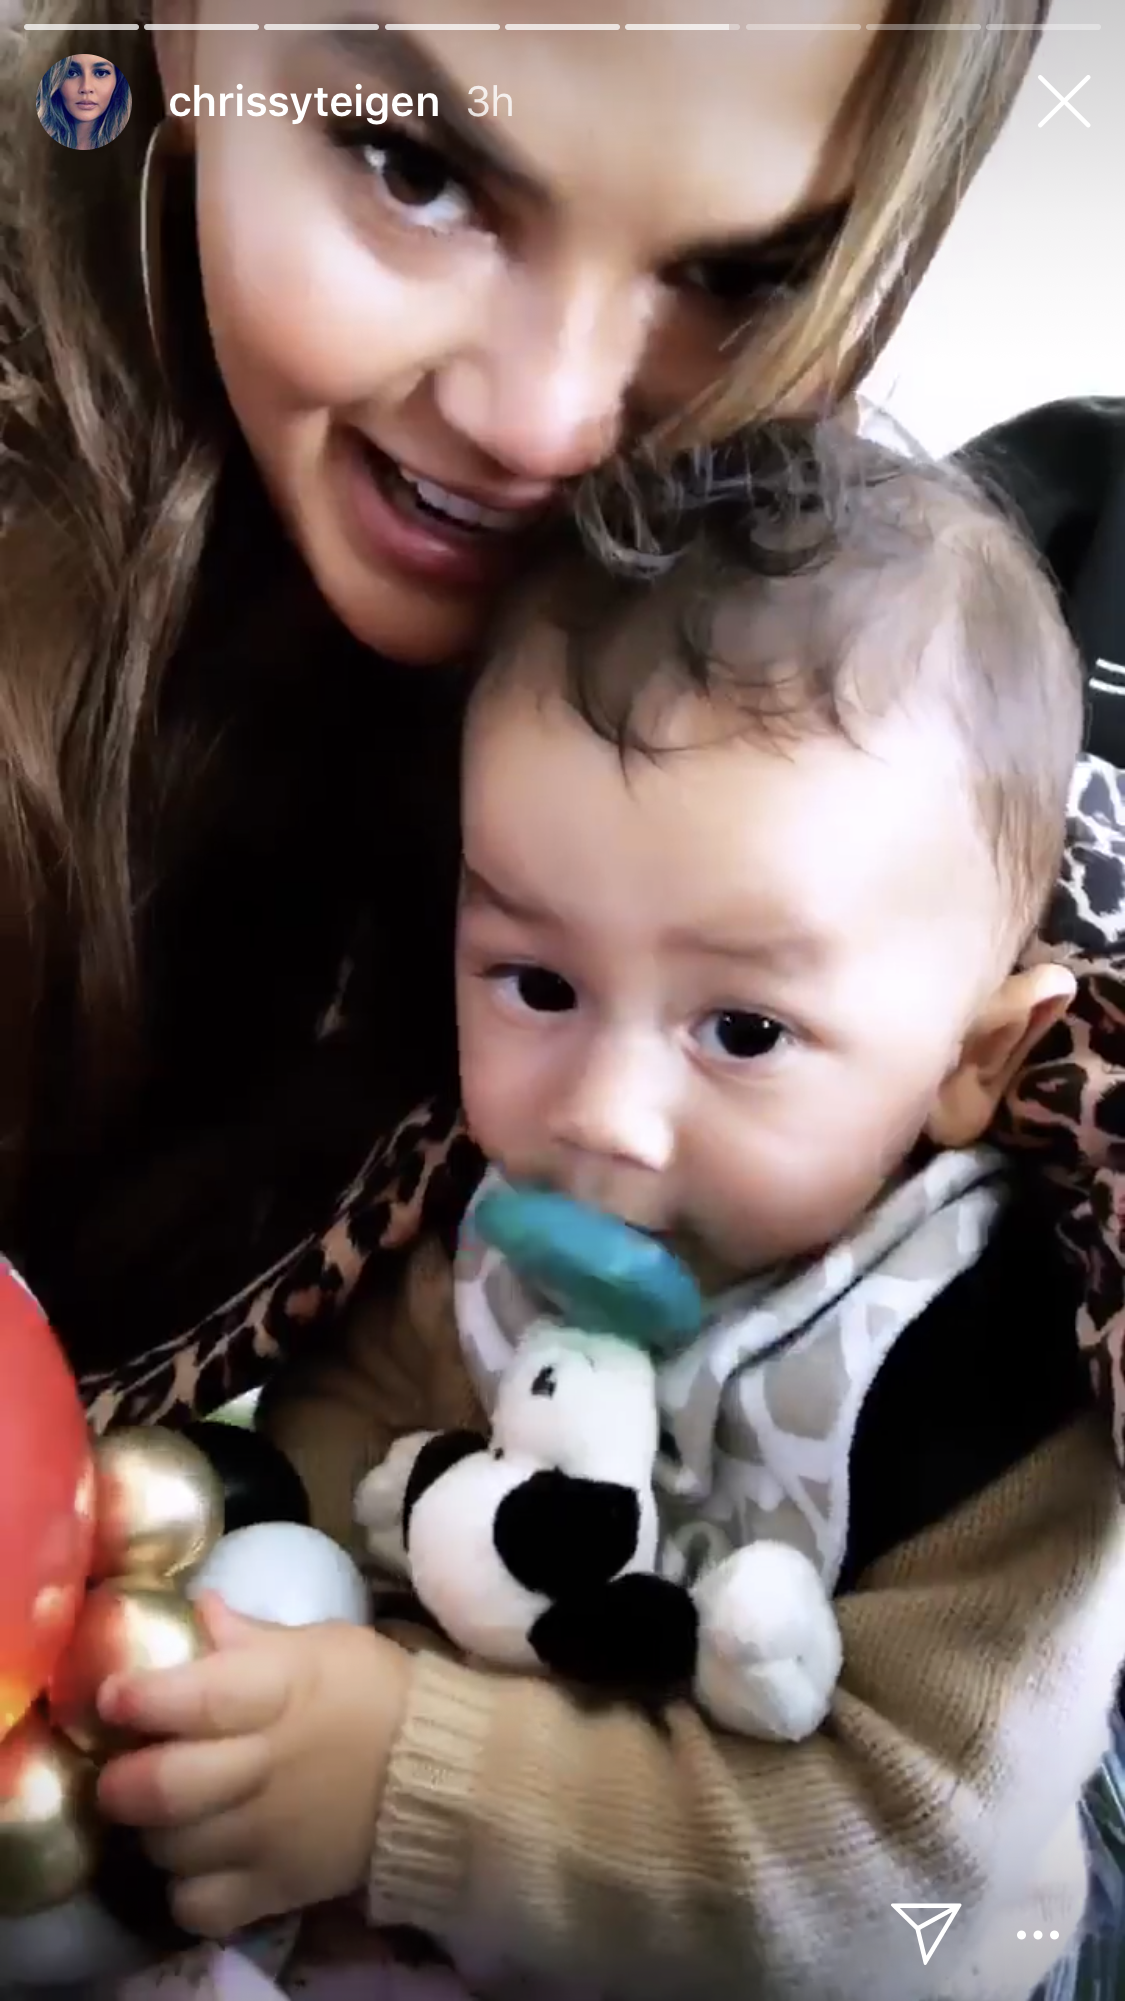 Kim Kardashian, chicago west, birthday party, alice in wonderland, chrissy teigen, john legend - Teigen shared a sweet video with Miles.